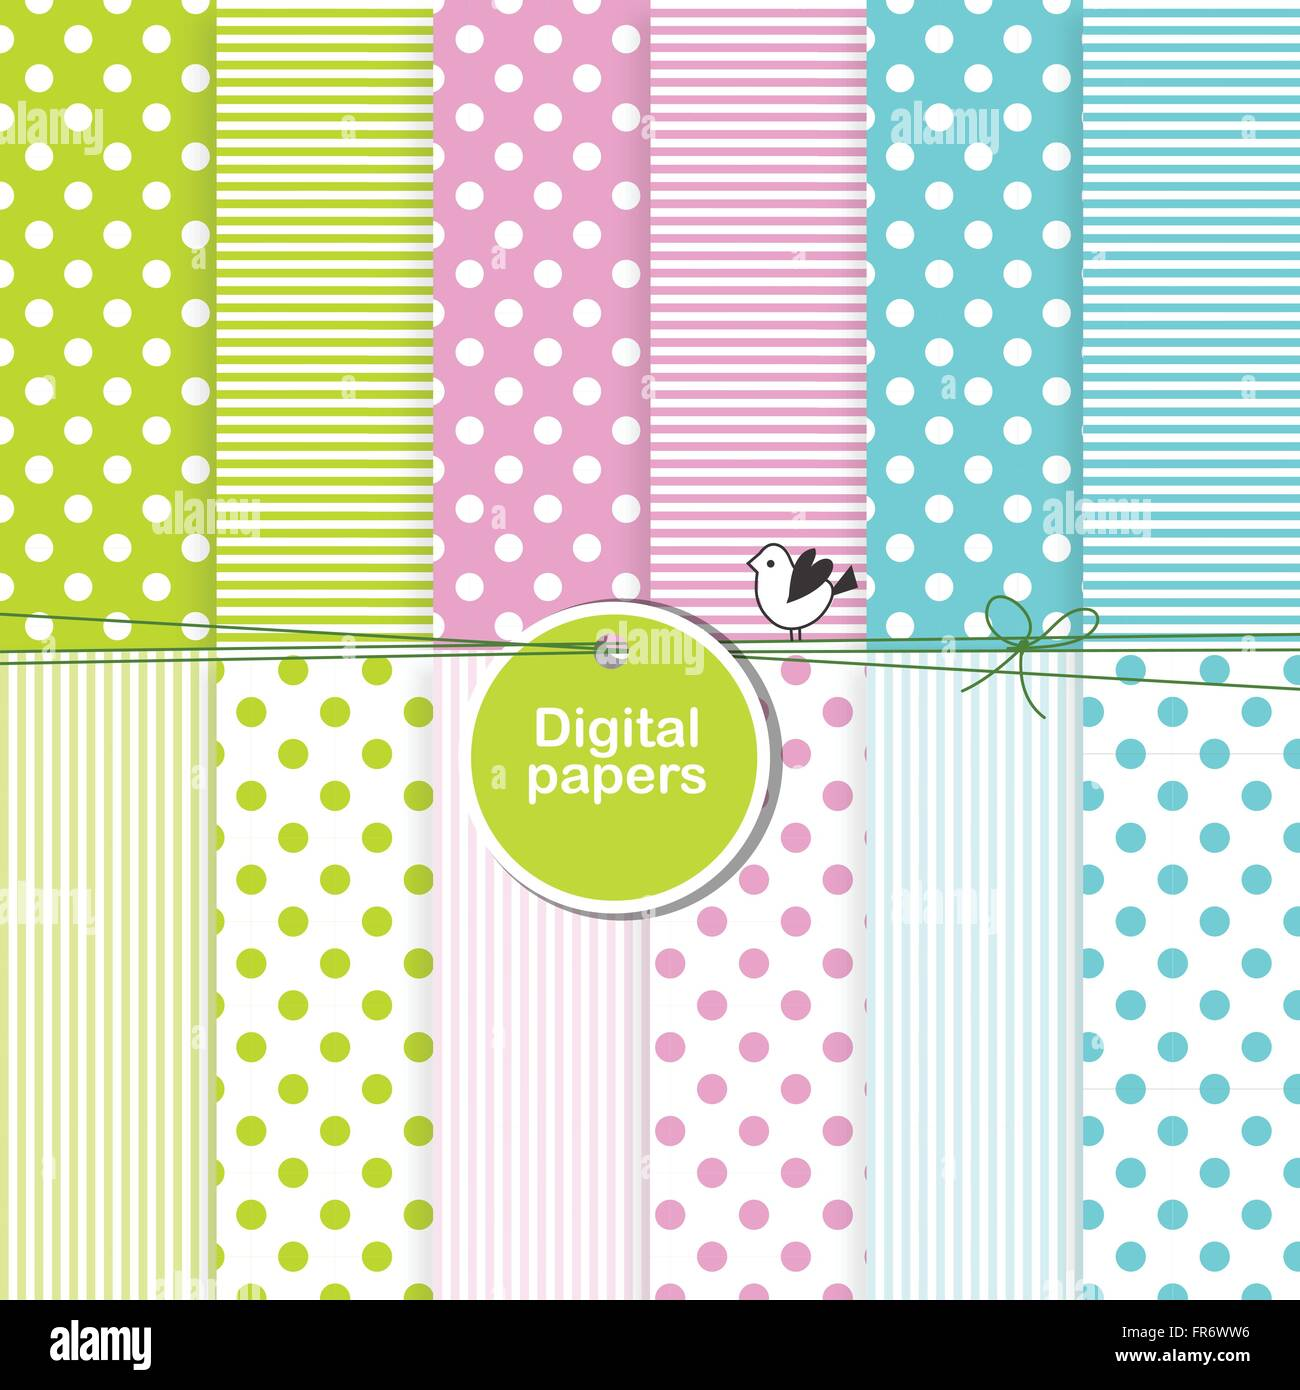 Digital Scrapbook Page High Resolution Stock Photography And Images Alamy